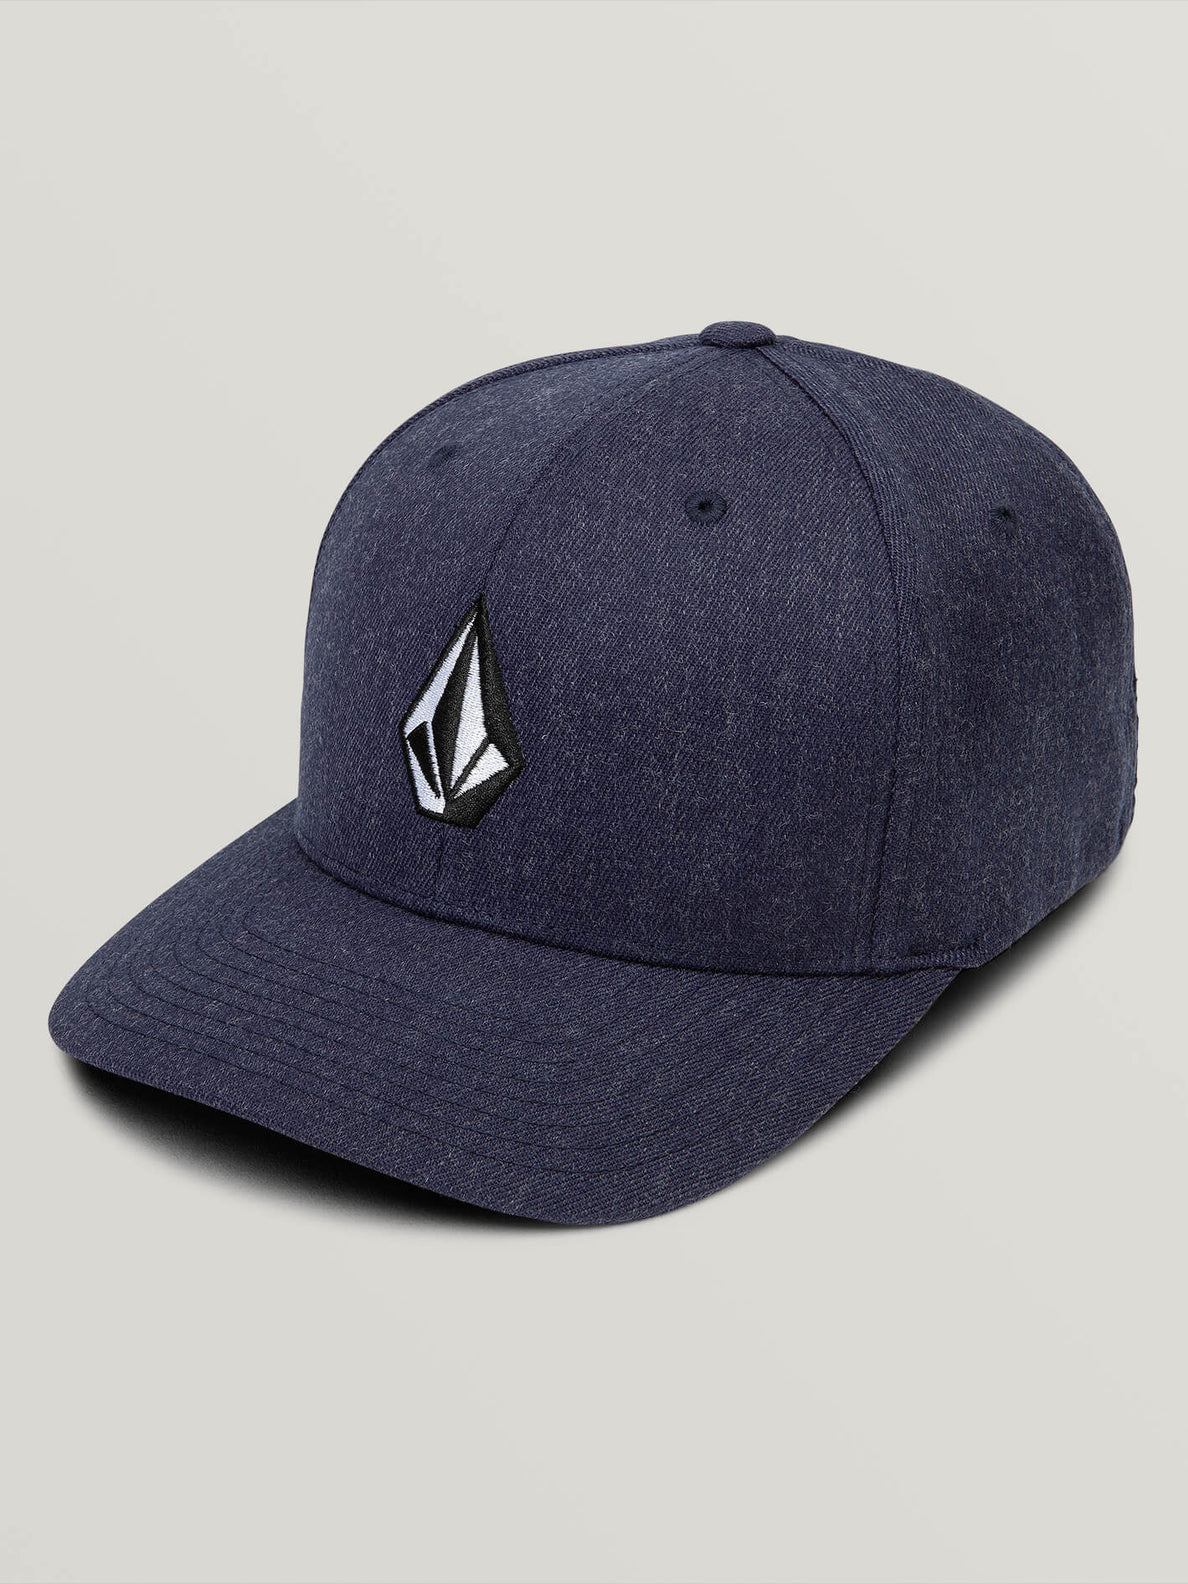 Full Stone Xfit Hat In Navy Heather, Front View